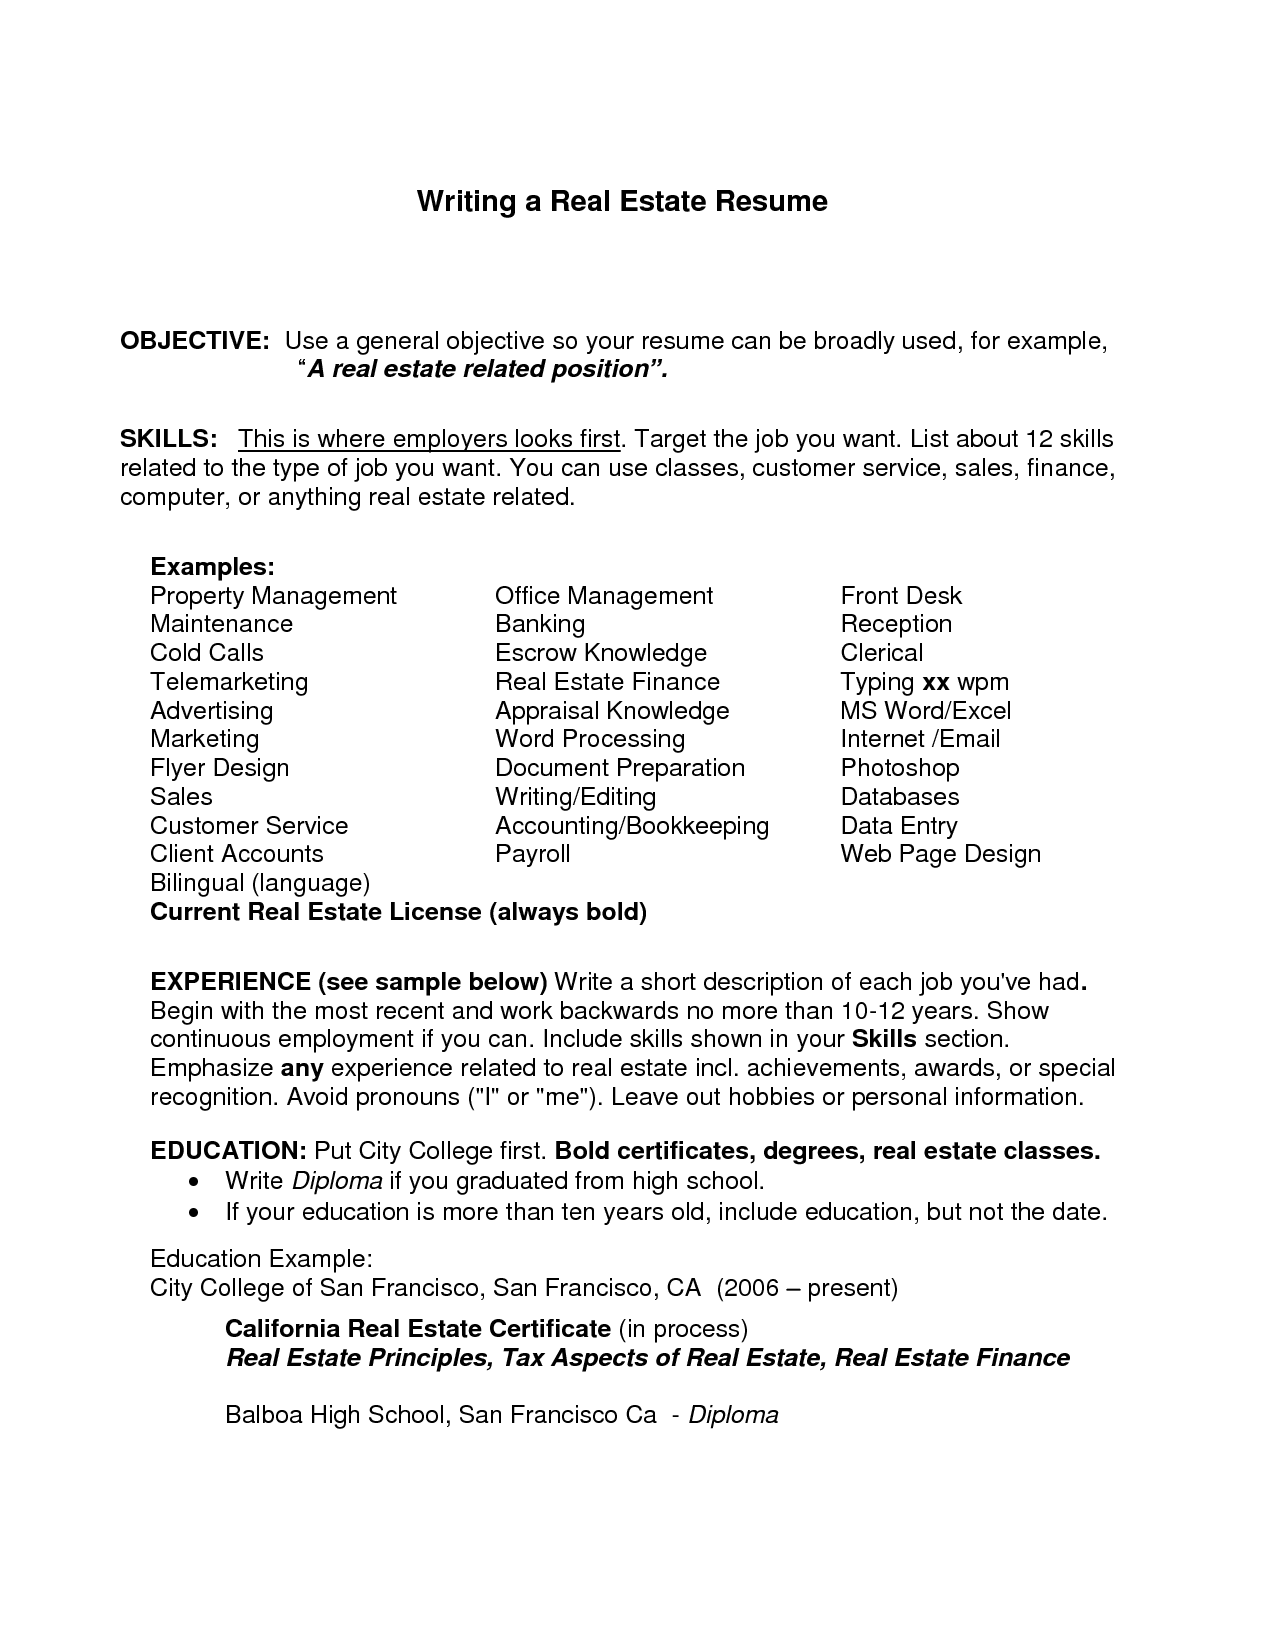 Superior General Resume Objective Examples. Job Resume Objective Examples For Resume Job Objective Examples